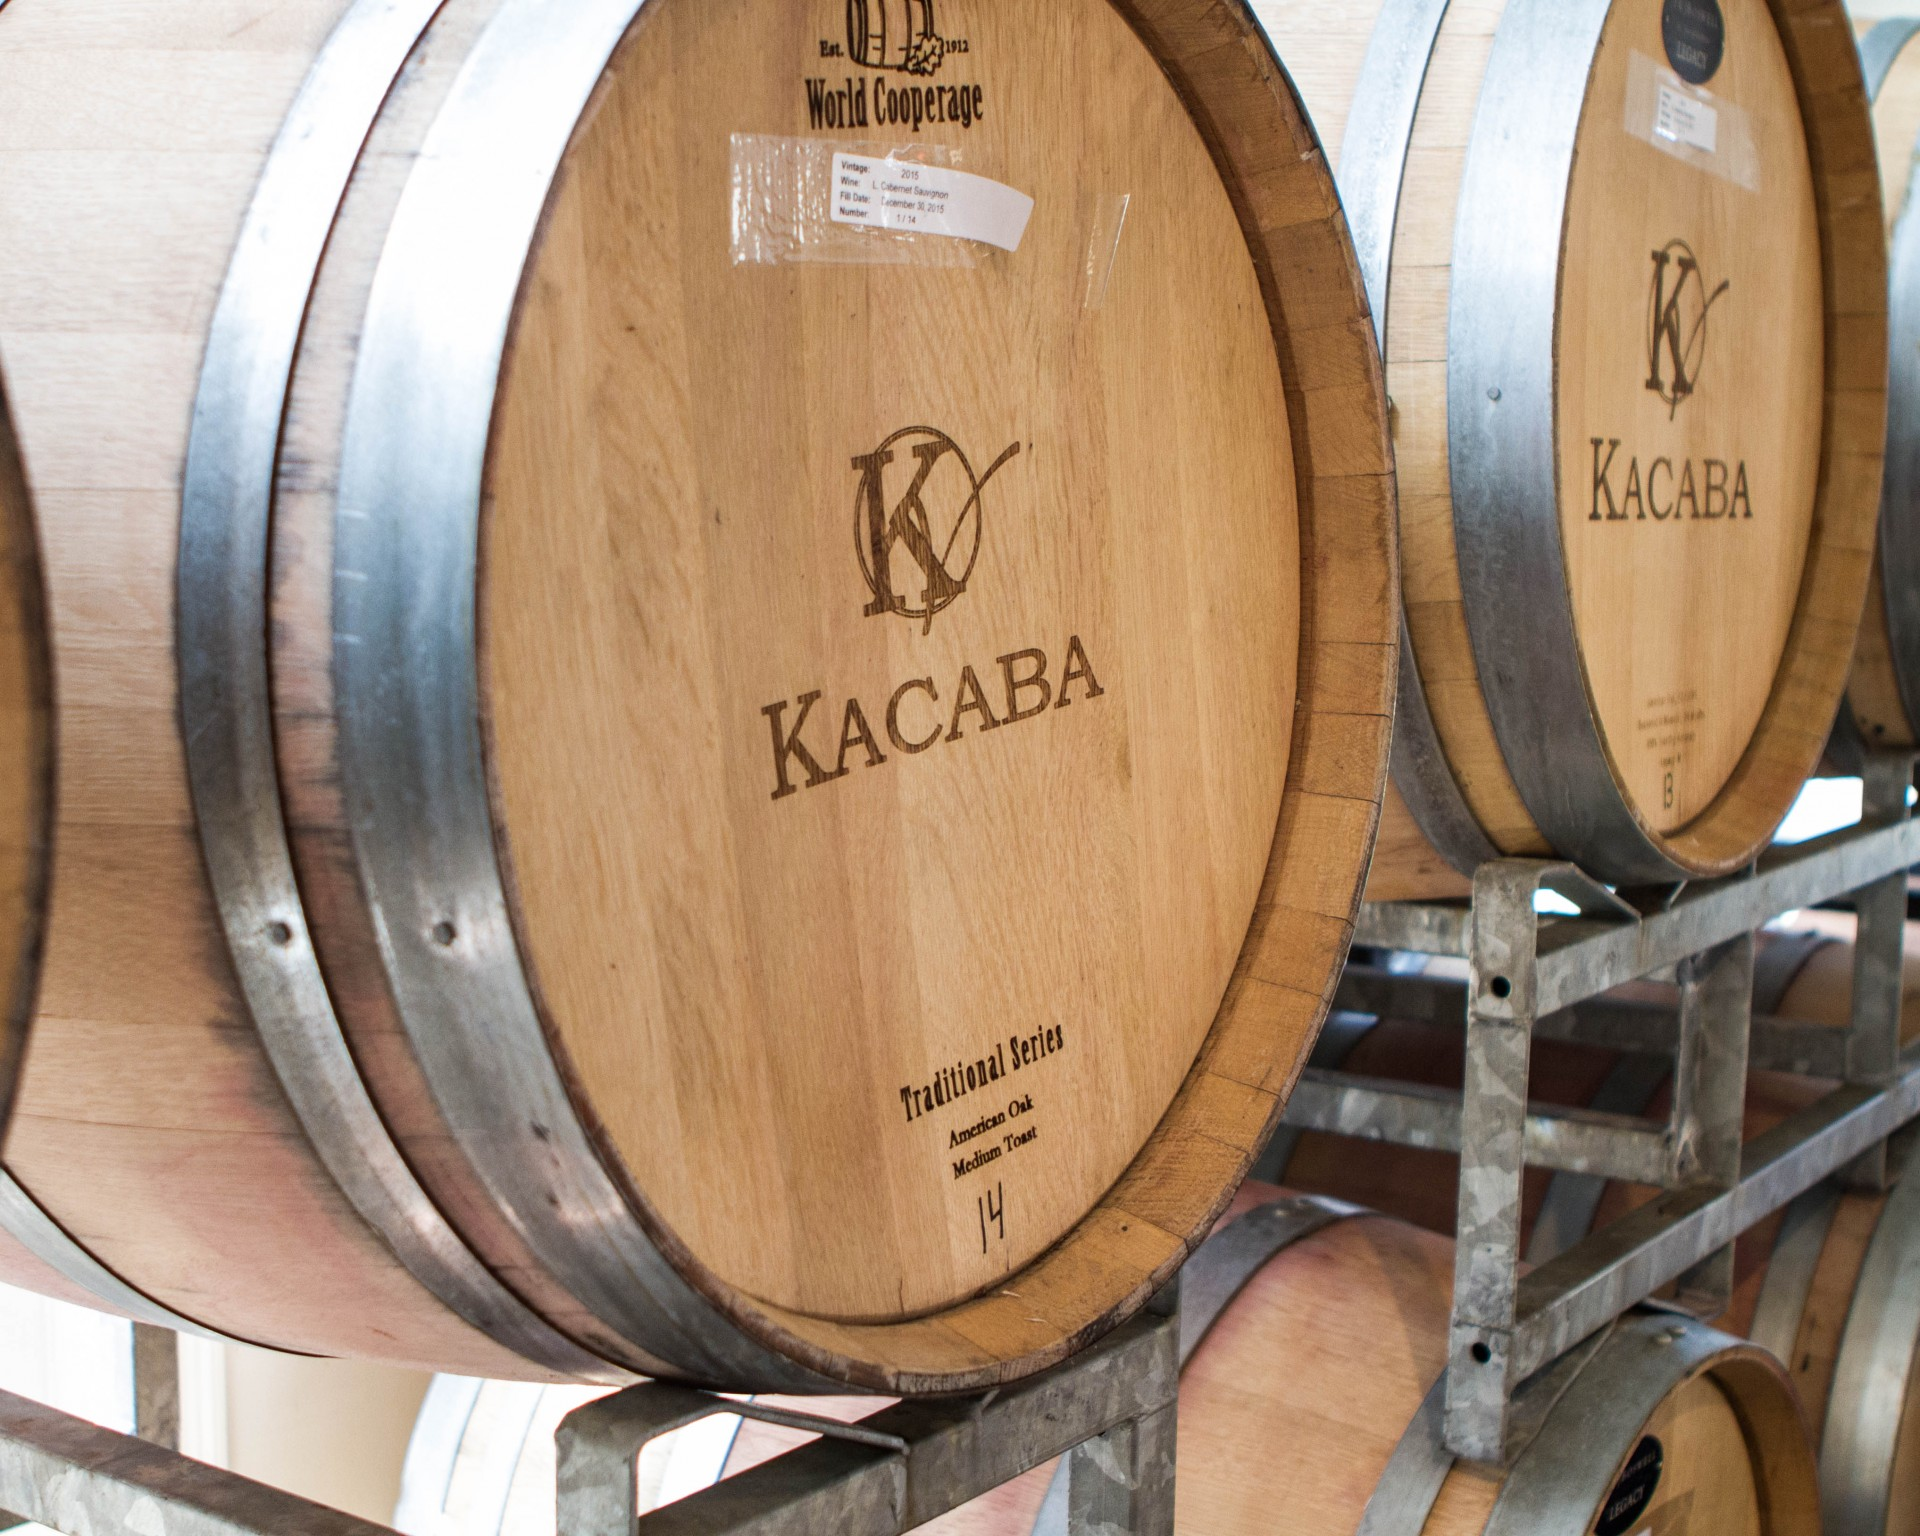 Picture of a wine barrel